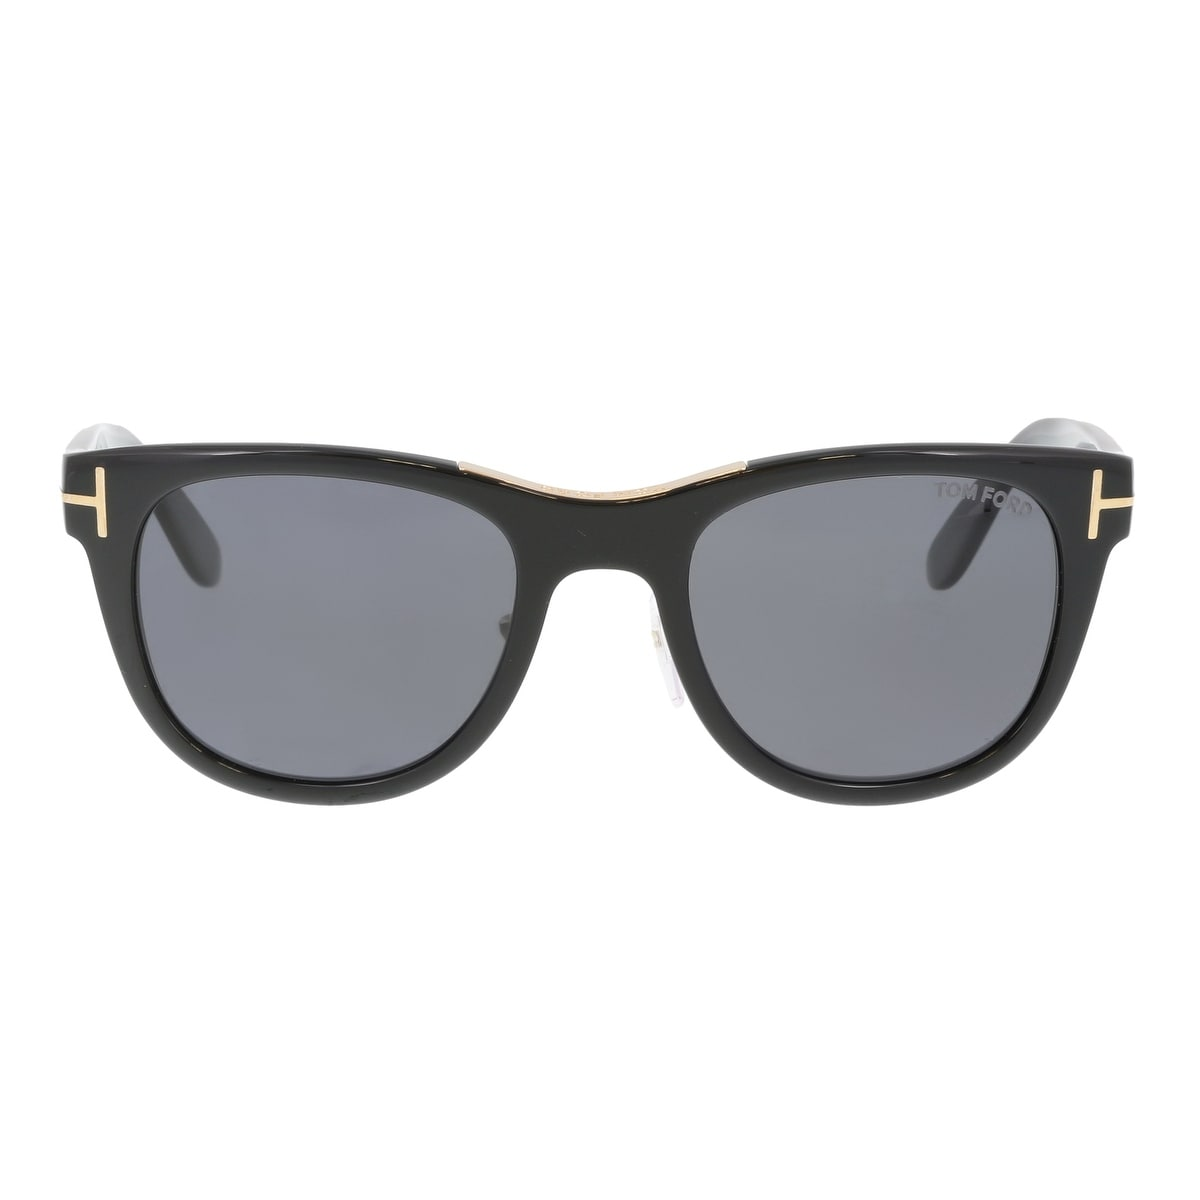 f409bc54b6 Shop Tom Ford FT0045 S 01D JACK Black Square Sunglasses - 51-20-135 - Free  Shipping Today - Overstock - 19223121